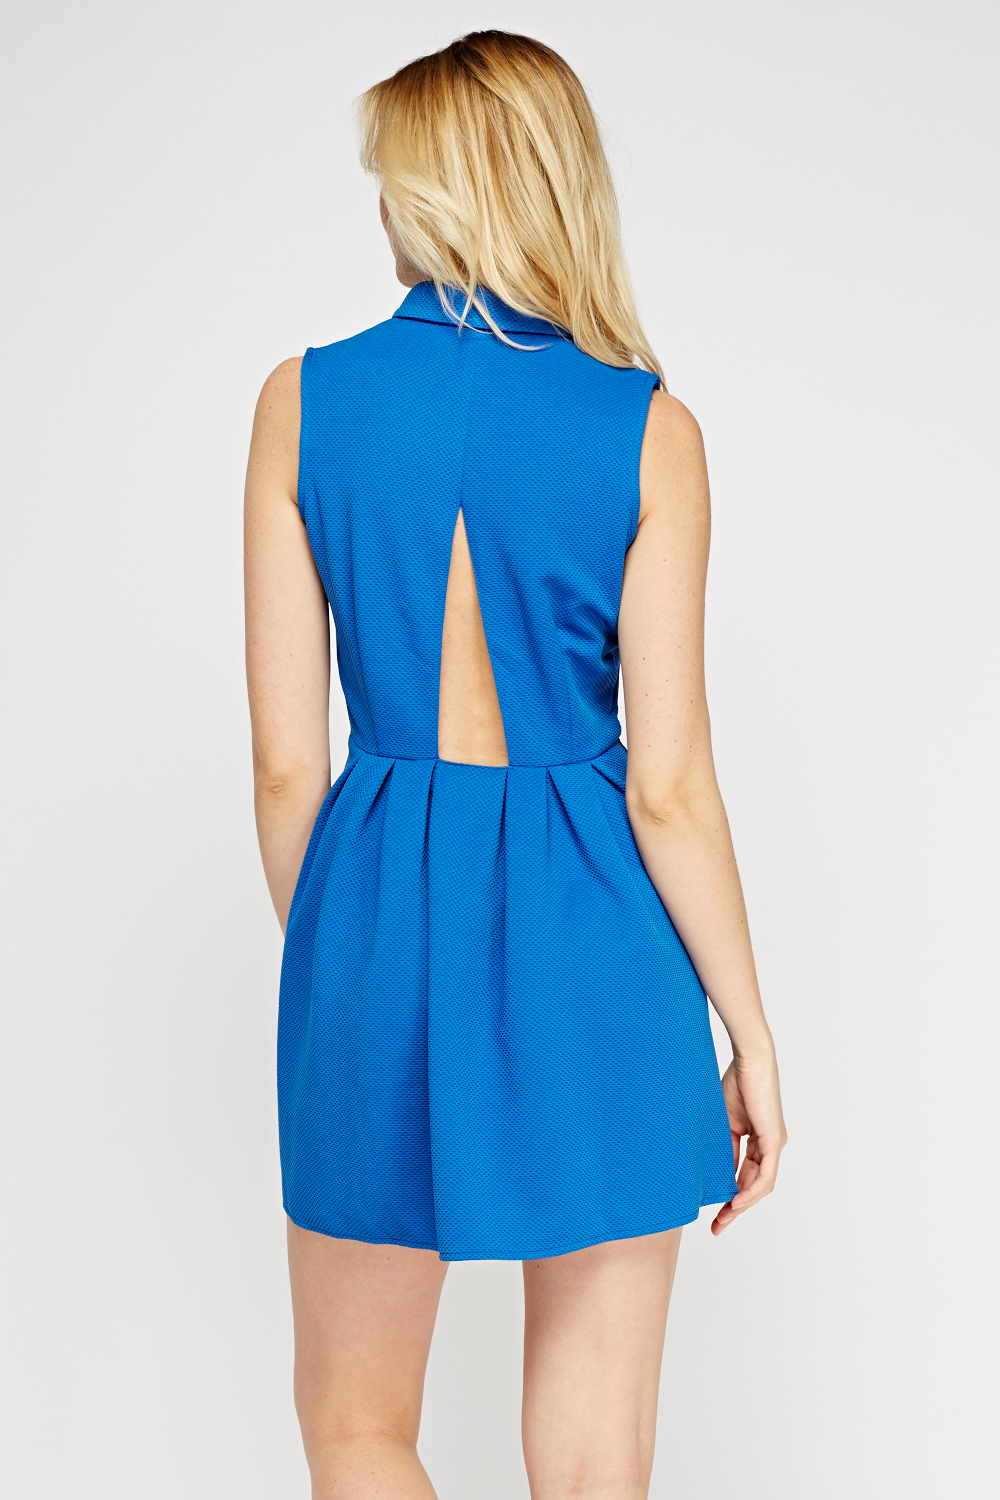 Cut Out Back Skater Dress Just 163 2